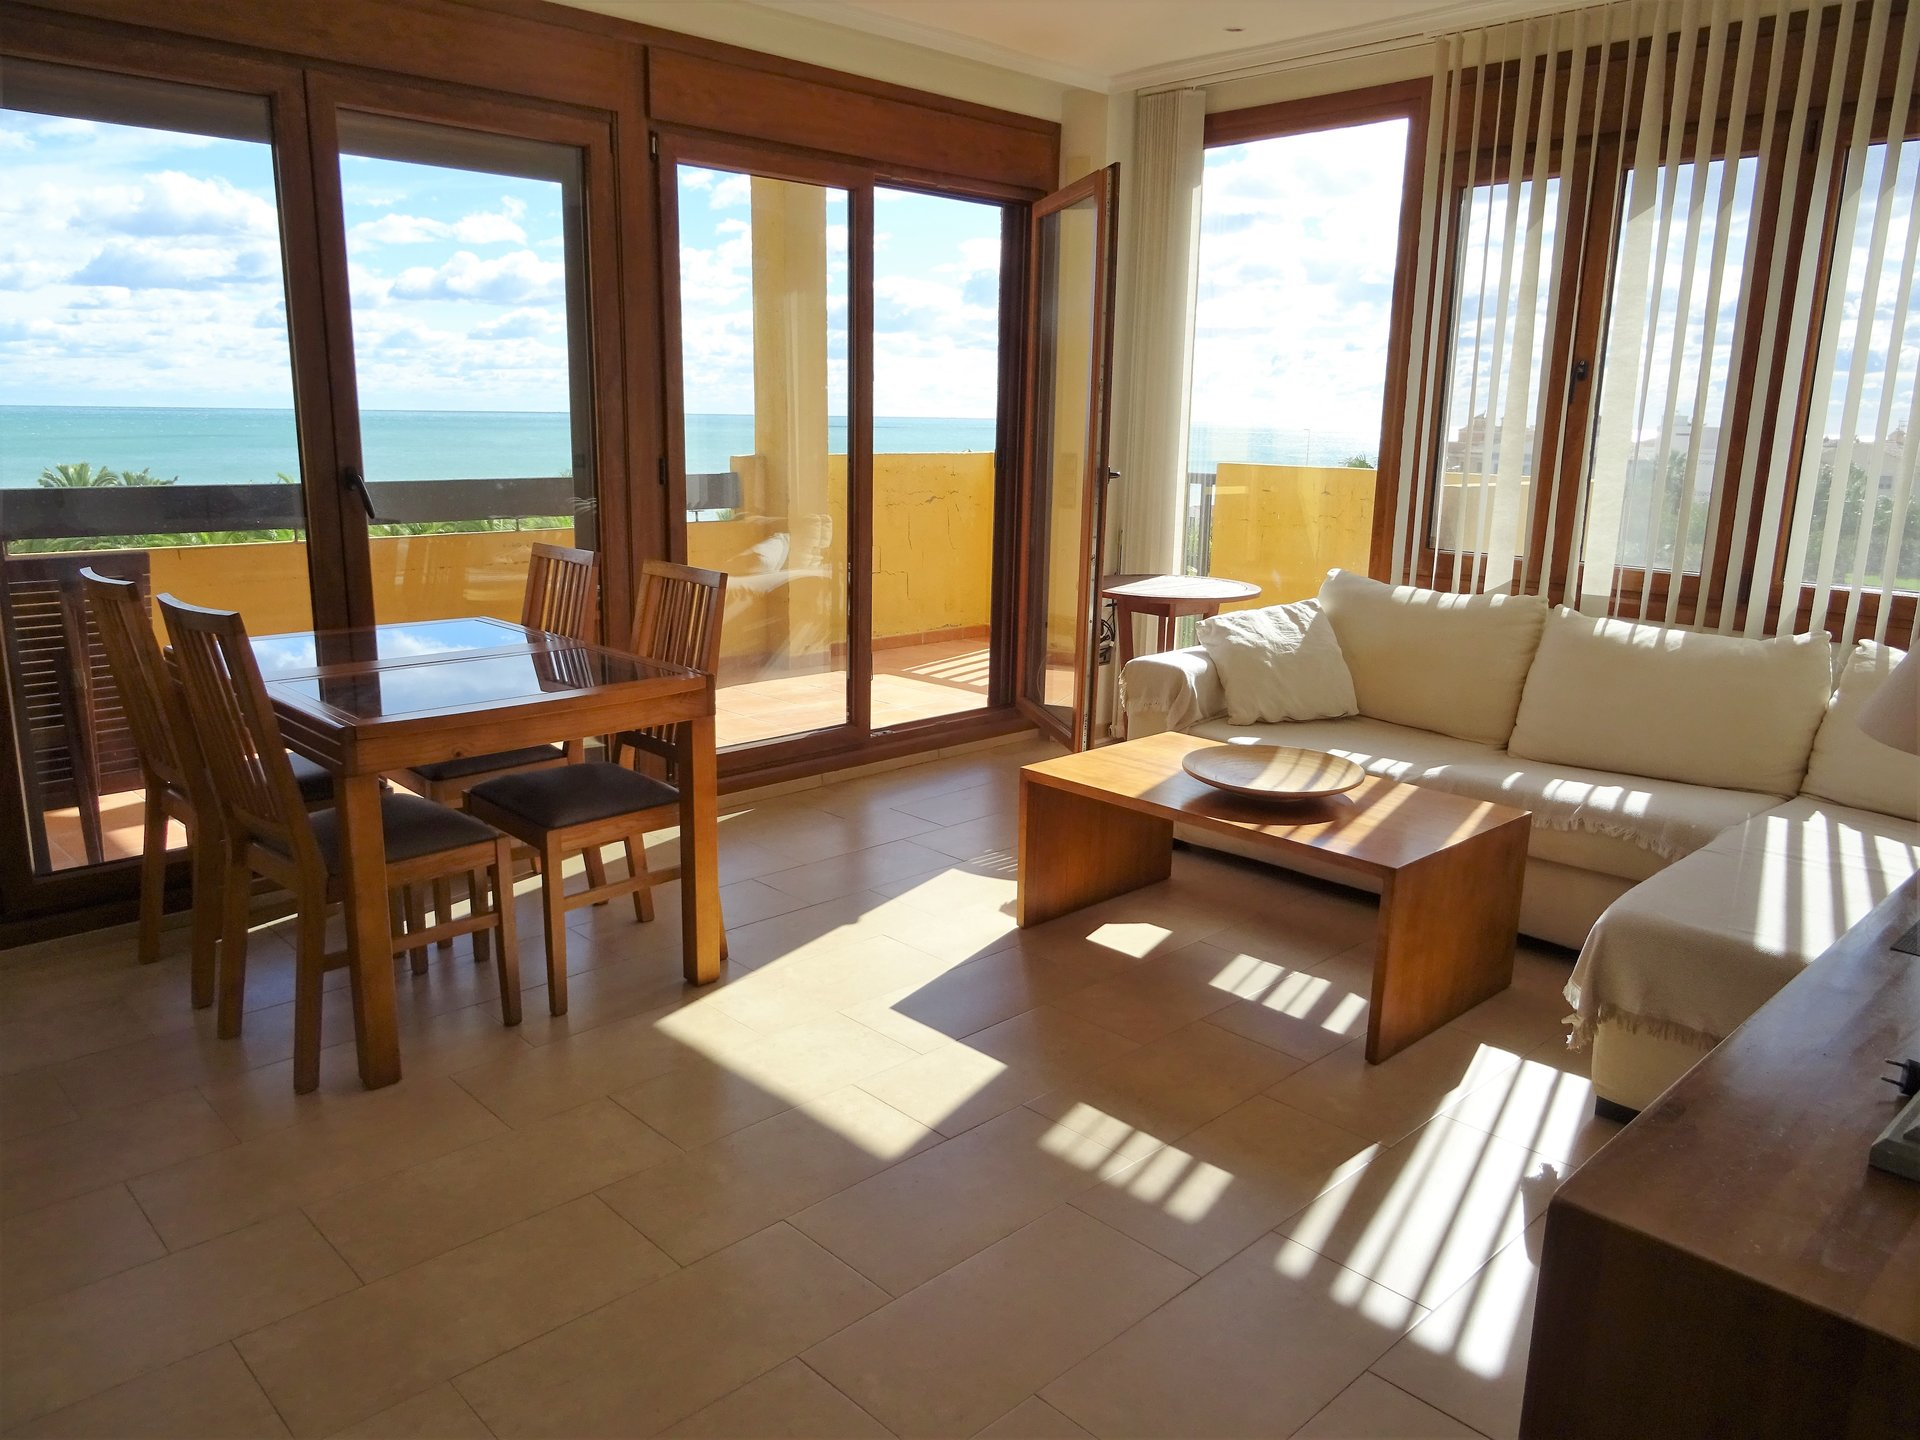 Sale Apartment - Alcossebre - Spain